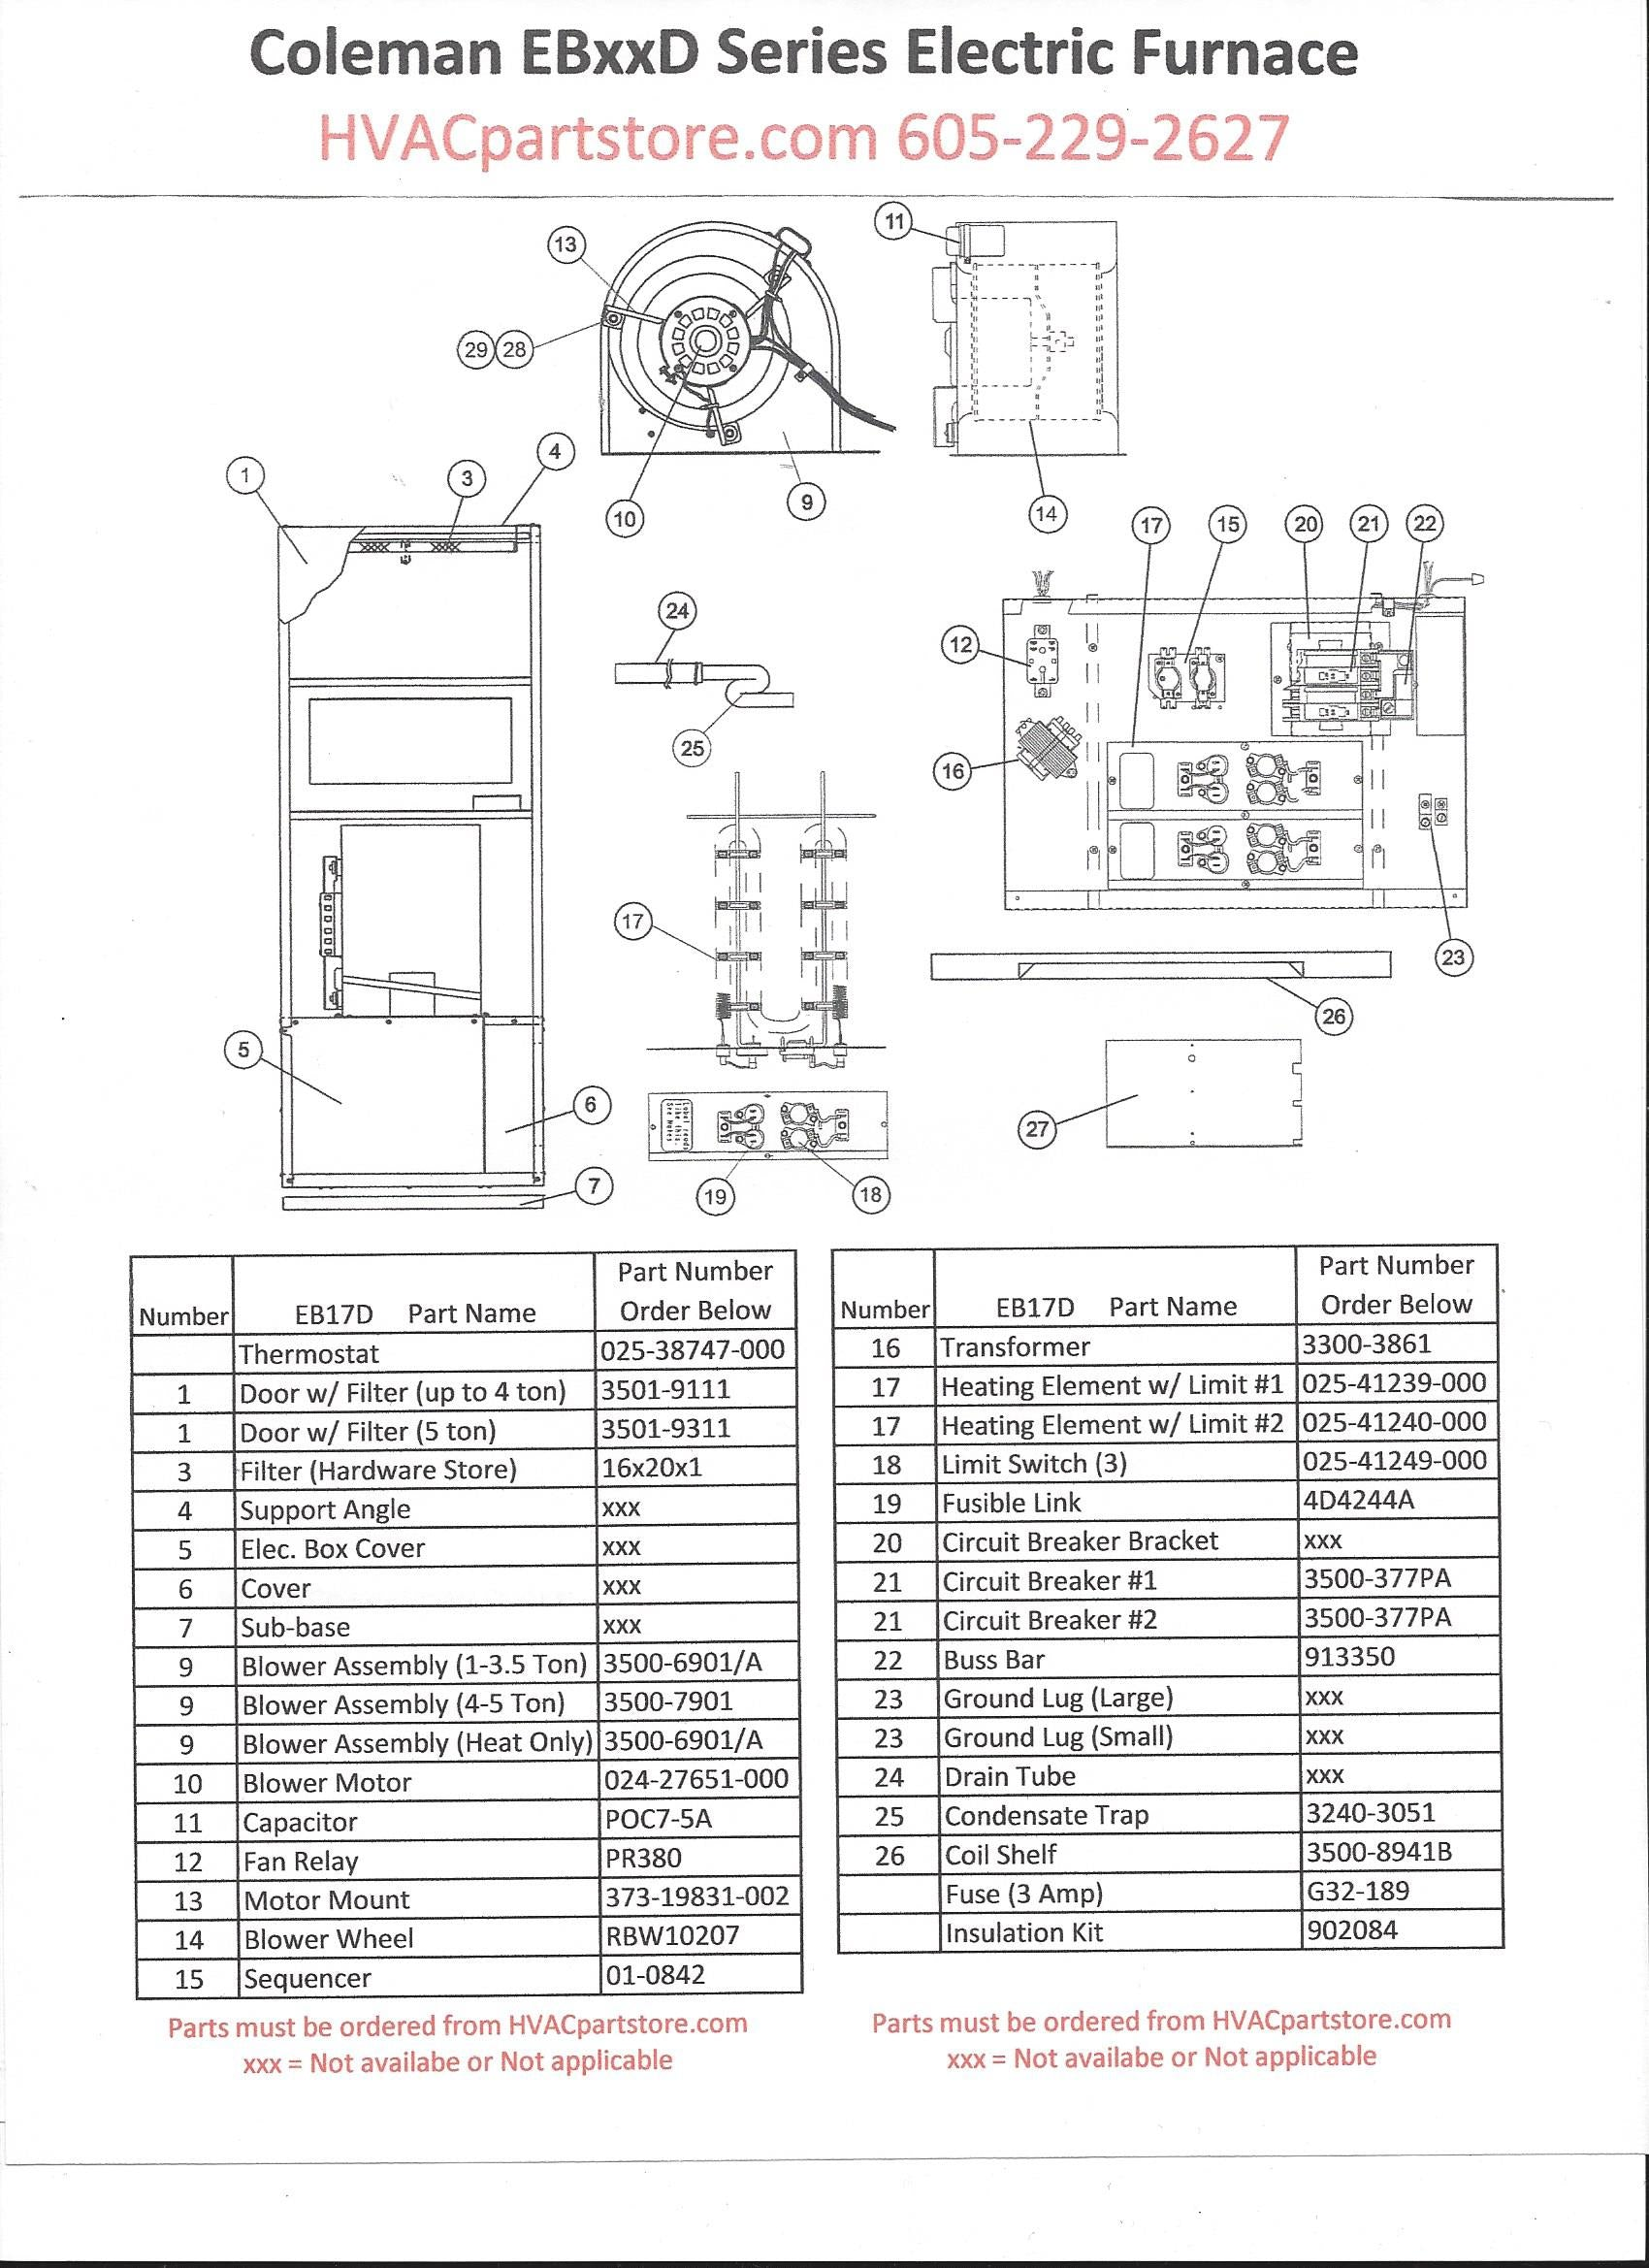 Coleman besides Nordyne Air Conditioner Gb Bm Wiring Diagram Manual Intertherm Furnace Manual Pdf L Fd Adfc D C further Parts together with Pole Electric Heat Sequencer Fan Relay Mobile Home Sequencers For Electric Furnace S Ed D Ef A additionally Gmp Wiring Diagram Goodman Furnace Control Board Wiring Diagram Goodman Heat Pump Rh Lsoncology Co Goodman Blower Relay Wiring Diagram Goodman Control Board Wiring Diagram R. on electric heat sequencer wiring diagram for furnace